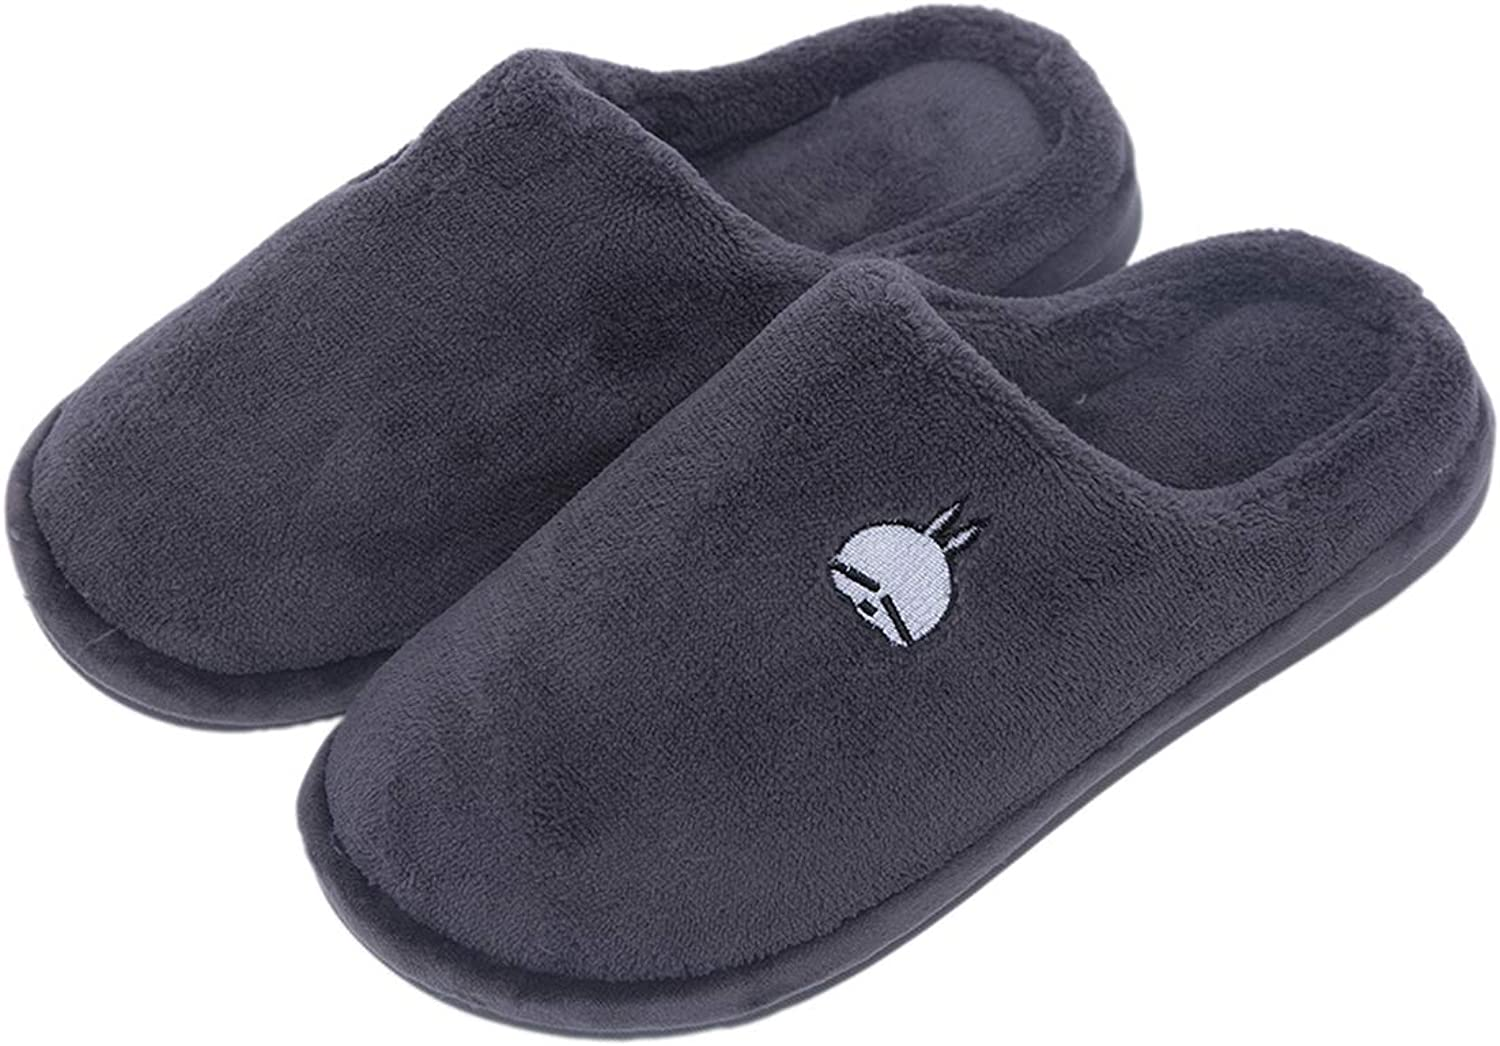 Asche Women's Soft Memory Foam Slippers Indoor&Outdoor House shoes Fluffy Faux Fur Slippers